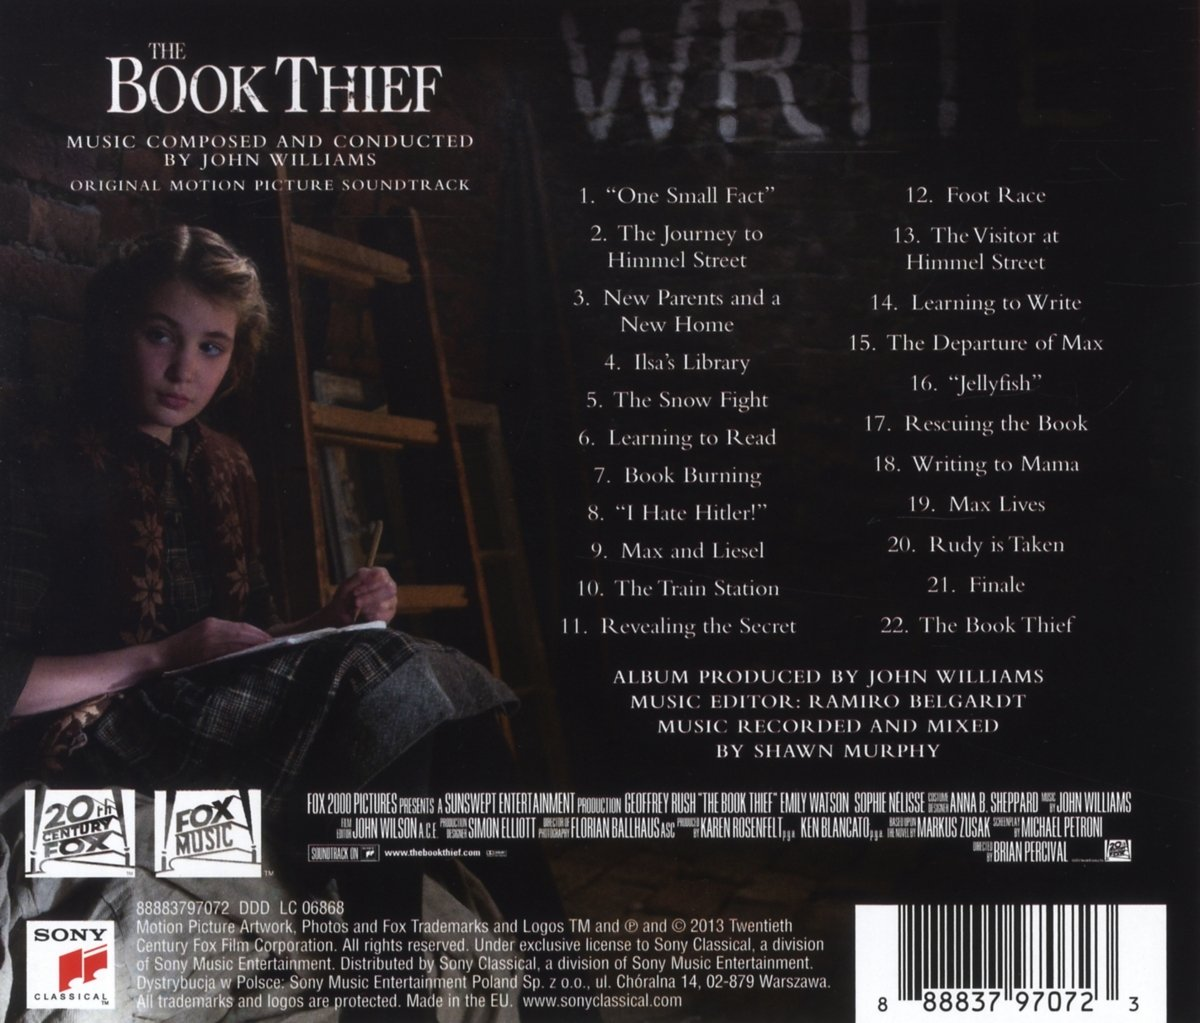 john williams the book thief original motion picture soundtrack john williams the book thief original motion picture soundtrack com music